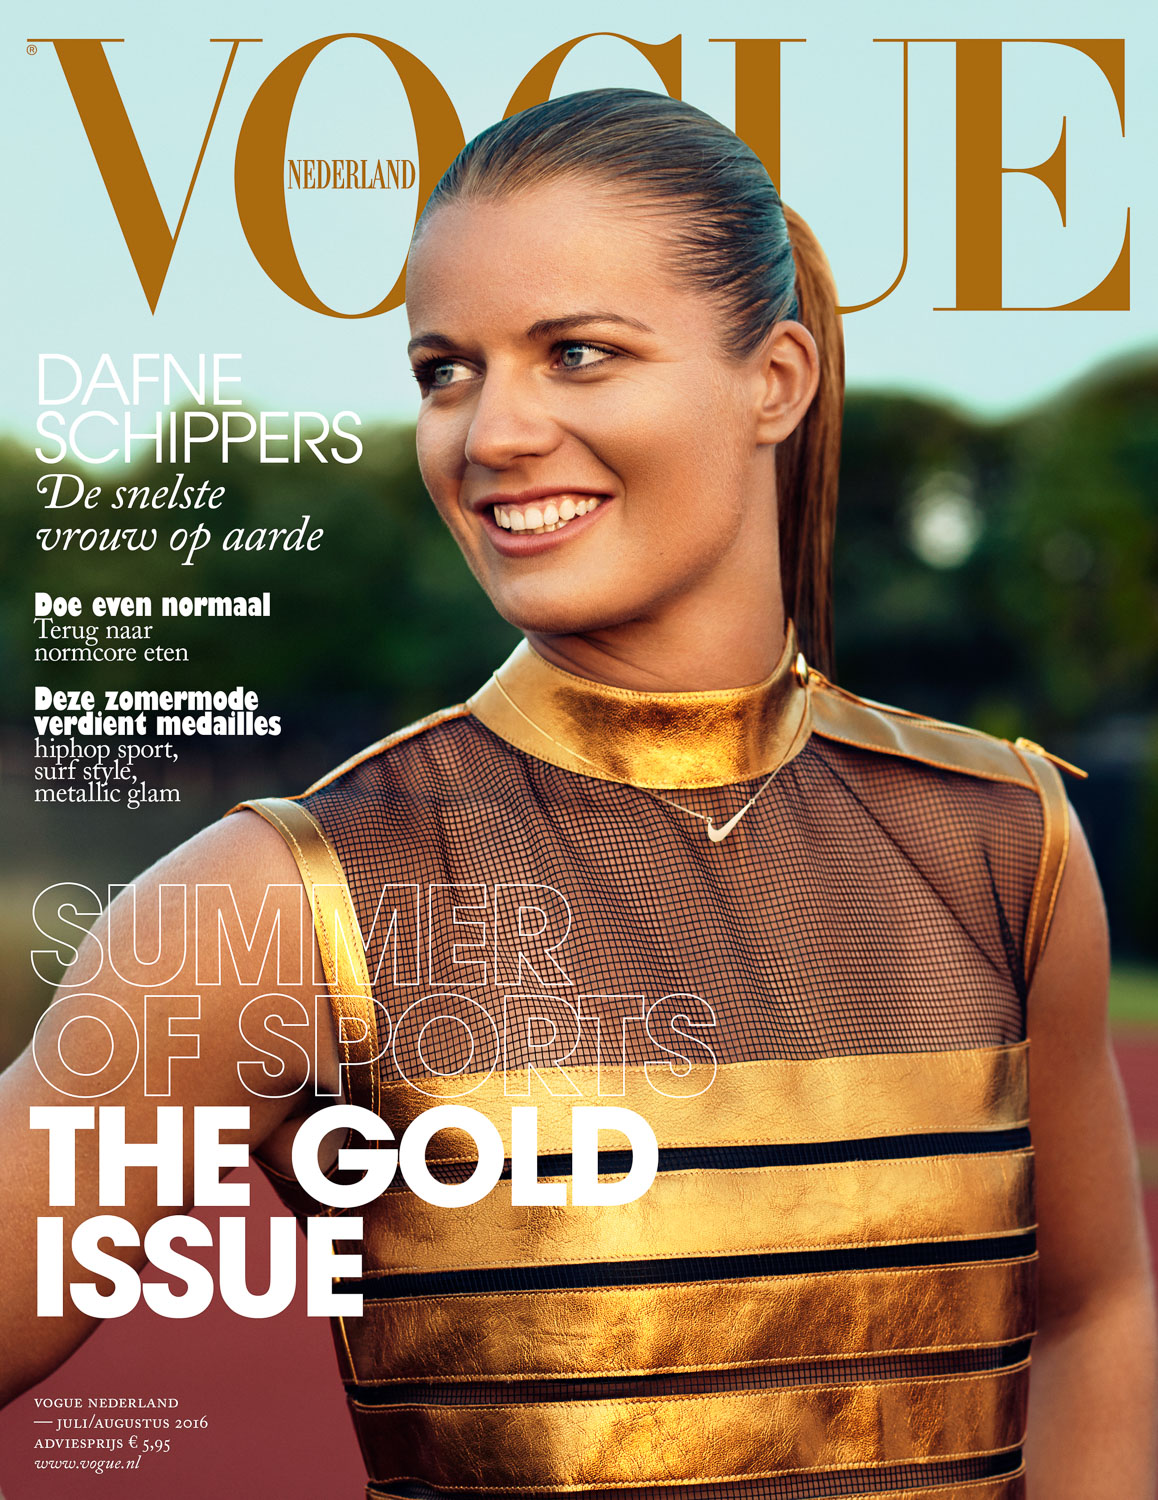 Dafne Schippers for VogueNL by Marc de Groot